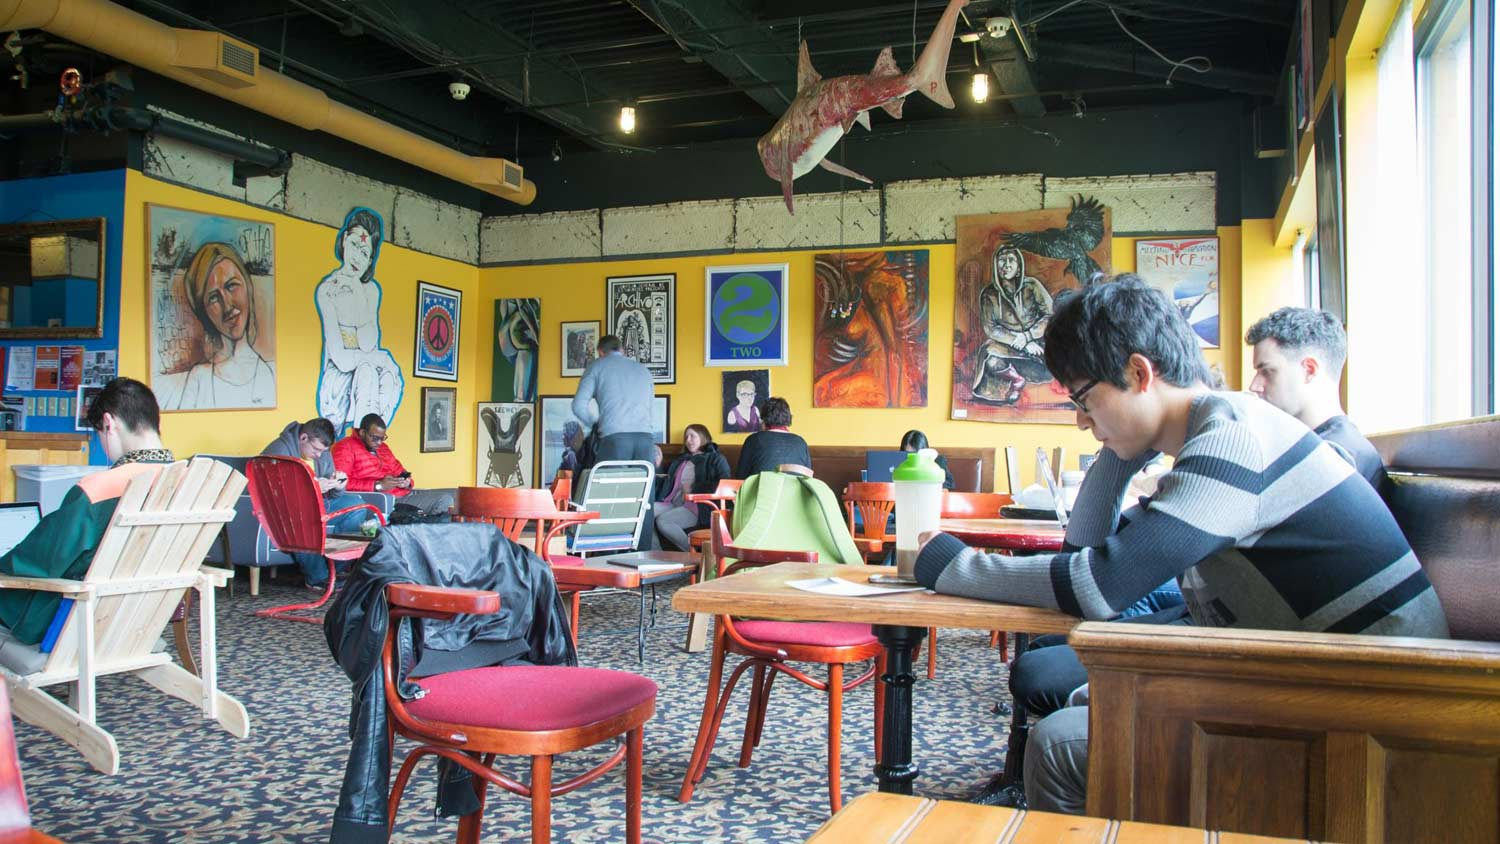 An artistic cafe with people enjoying coffee and drinks